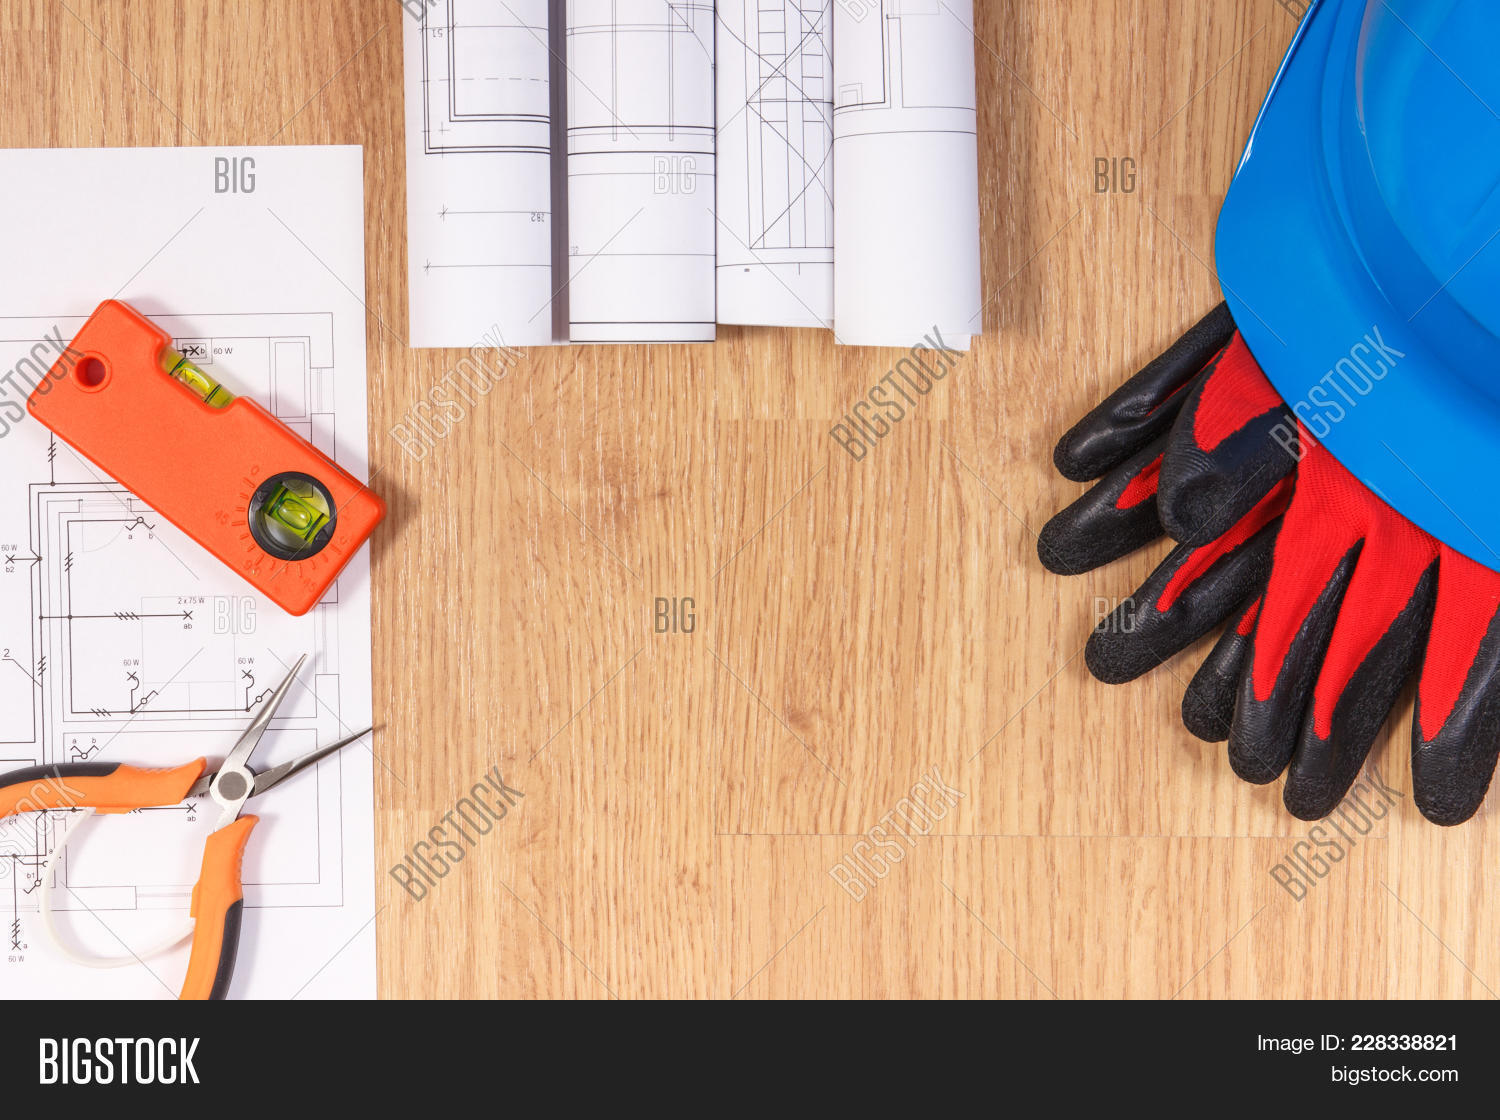 Diagrams electrical construction image photo bigstock diagrams or electrical construction drawings protective helmet with gloves and orange work tools a ccuart Image collections